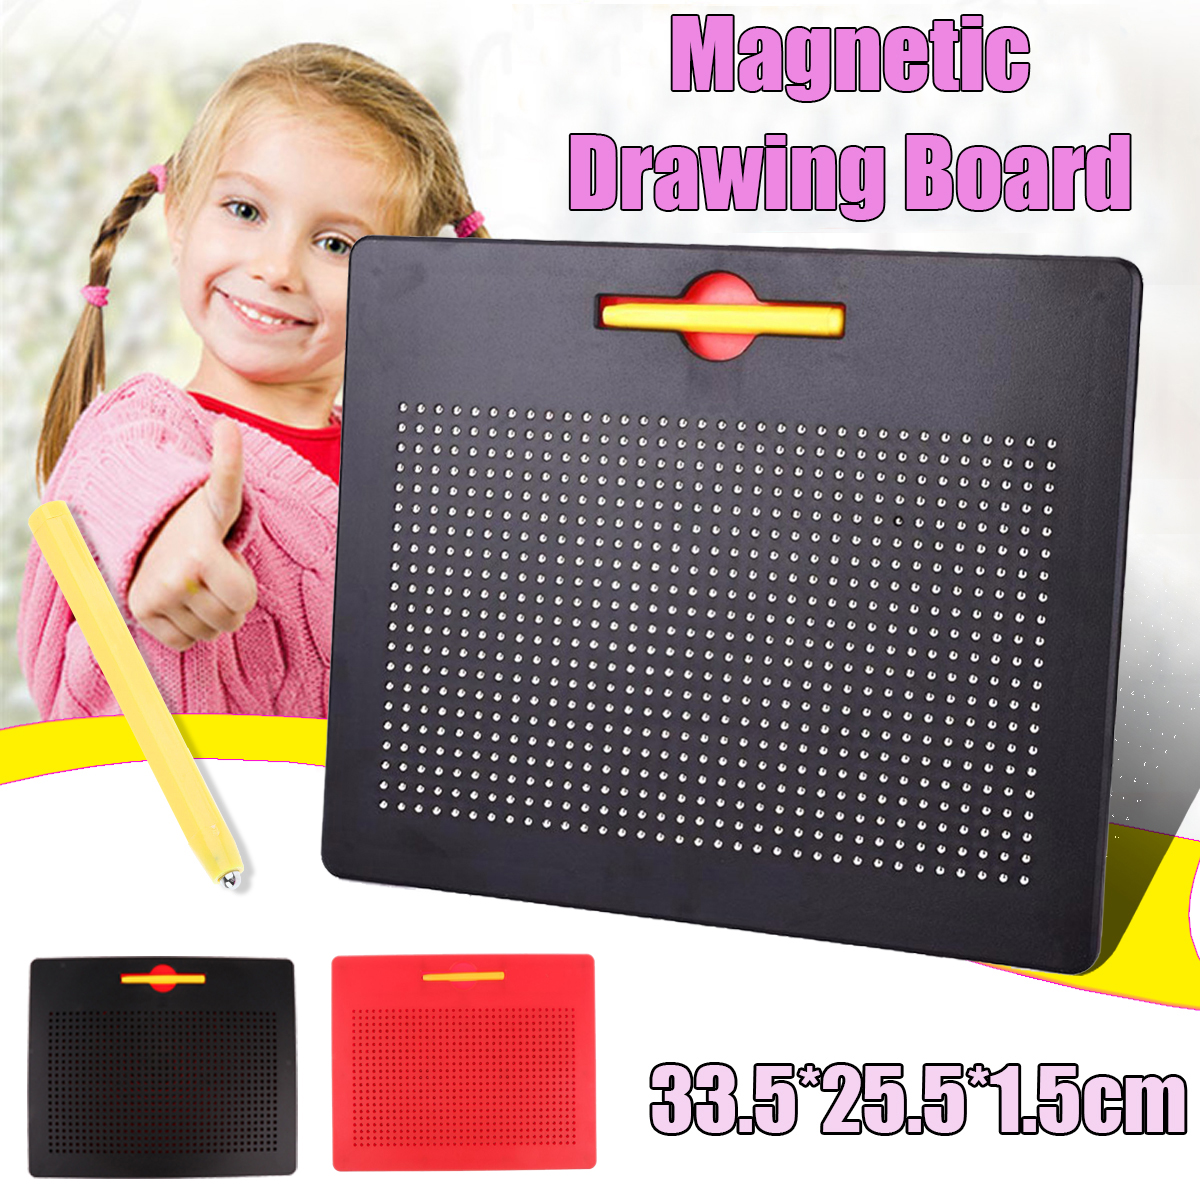 Educational Magnetic Tablet Magnatab Drawing Board Bead Pad w//Pen Kids Toy Gift